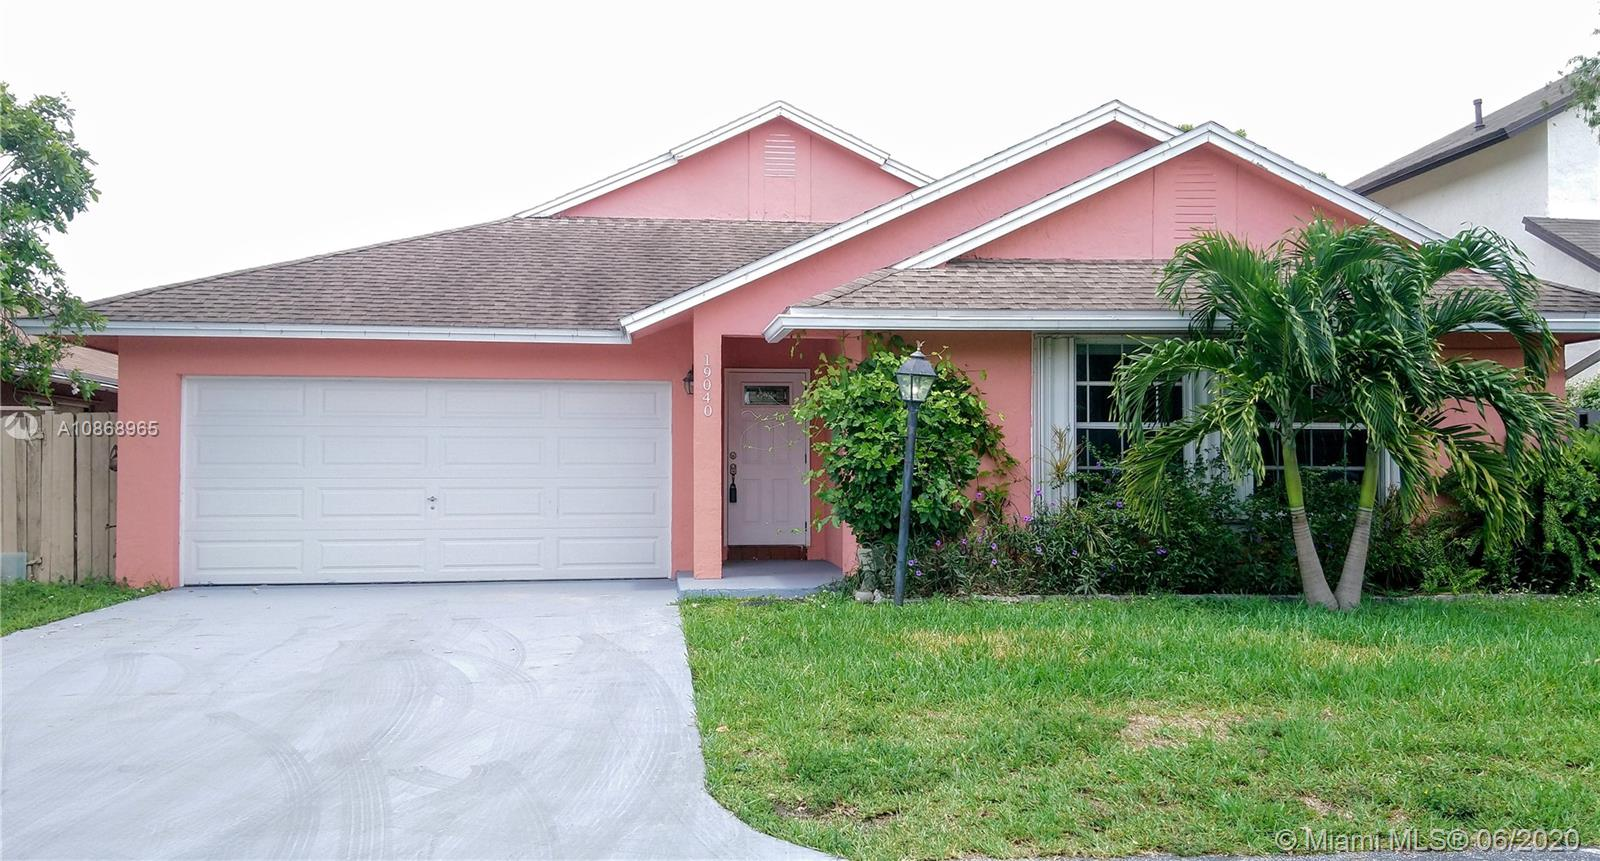 19040 NW 78th Ave  For Sale A10868965, FL